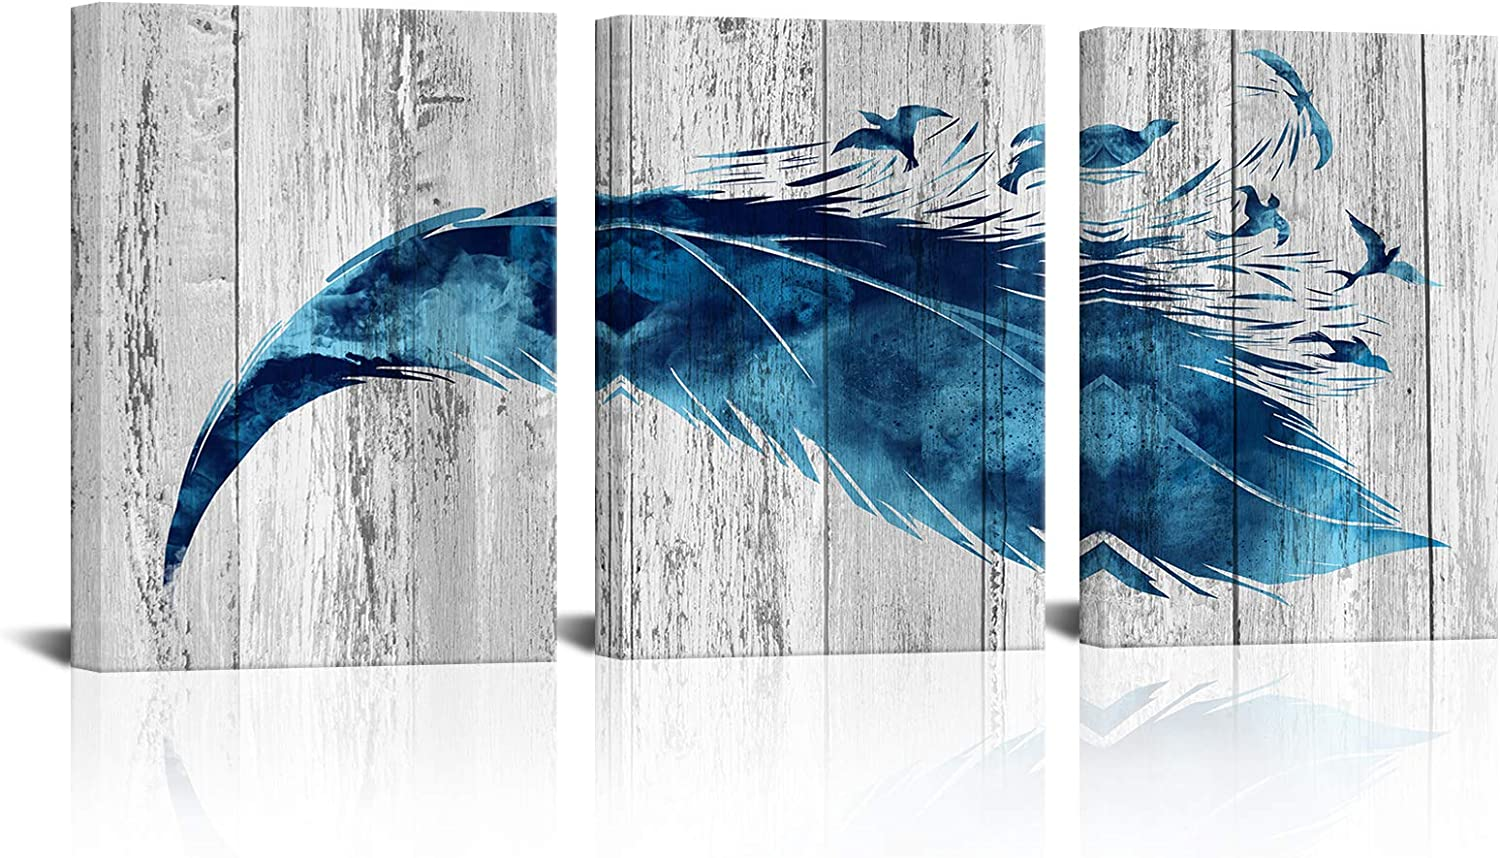 Kalormore Rustic Grey and Blue Canvas Wall Art Decor Abstract Feather and Flying Birds Picture Giclee Prints for Modern Living Room Bedroom Bathroom Decoration Ready to Hang